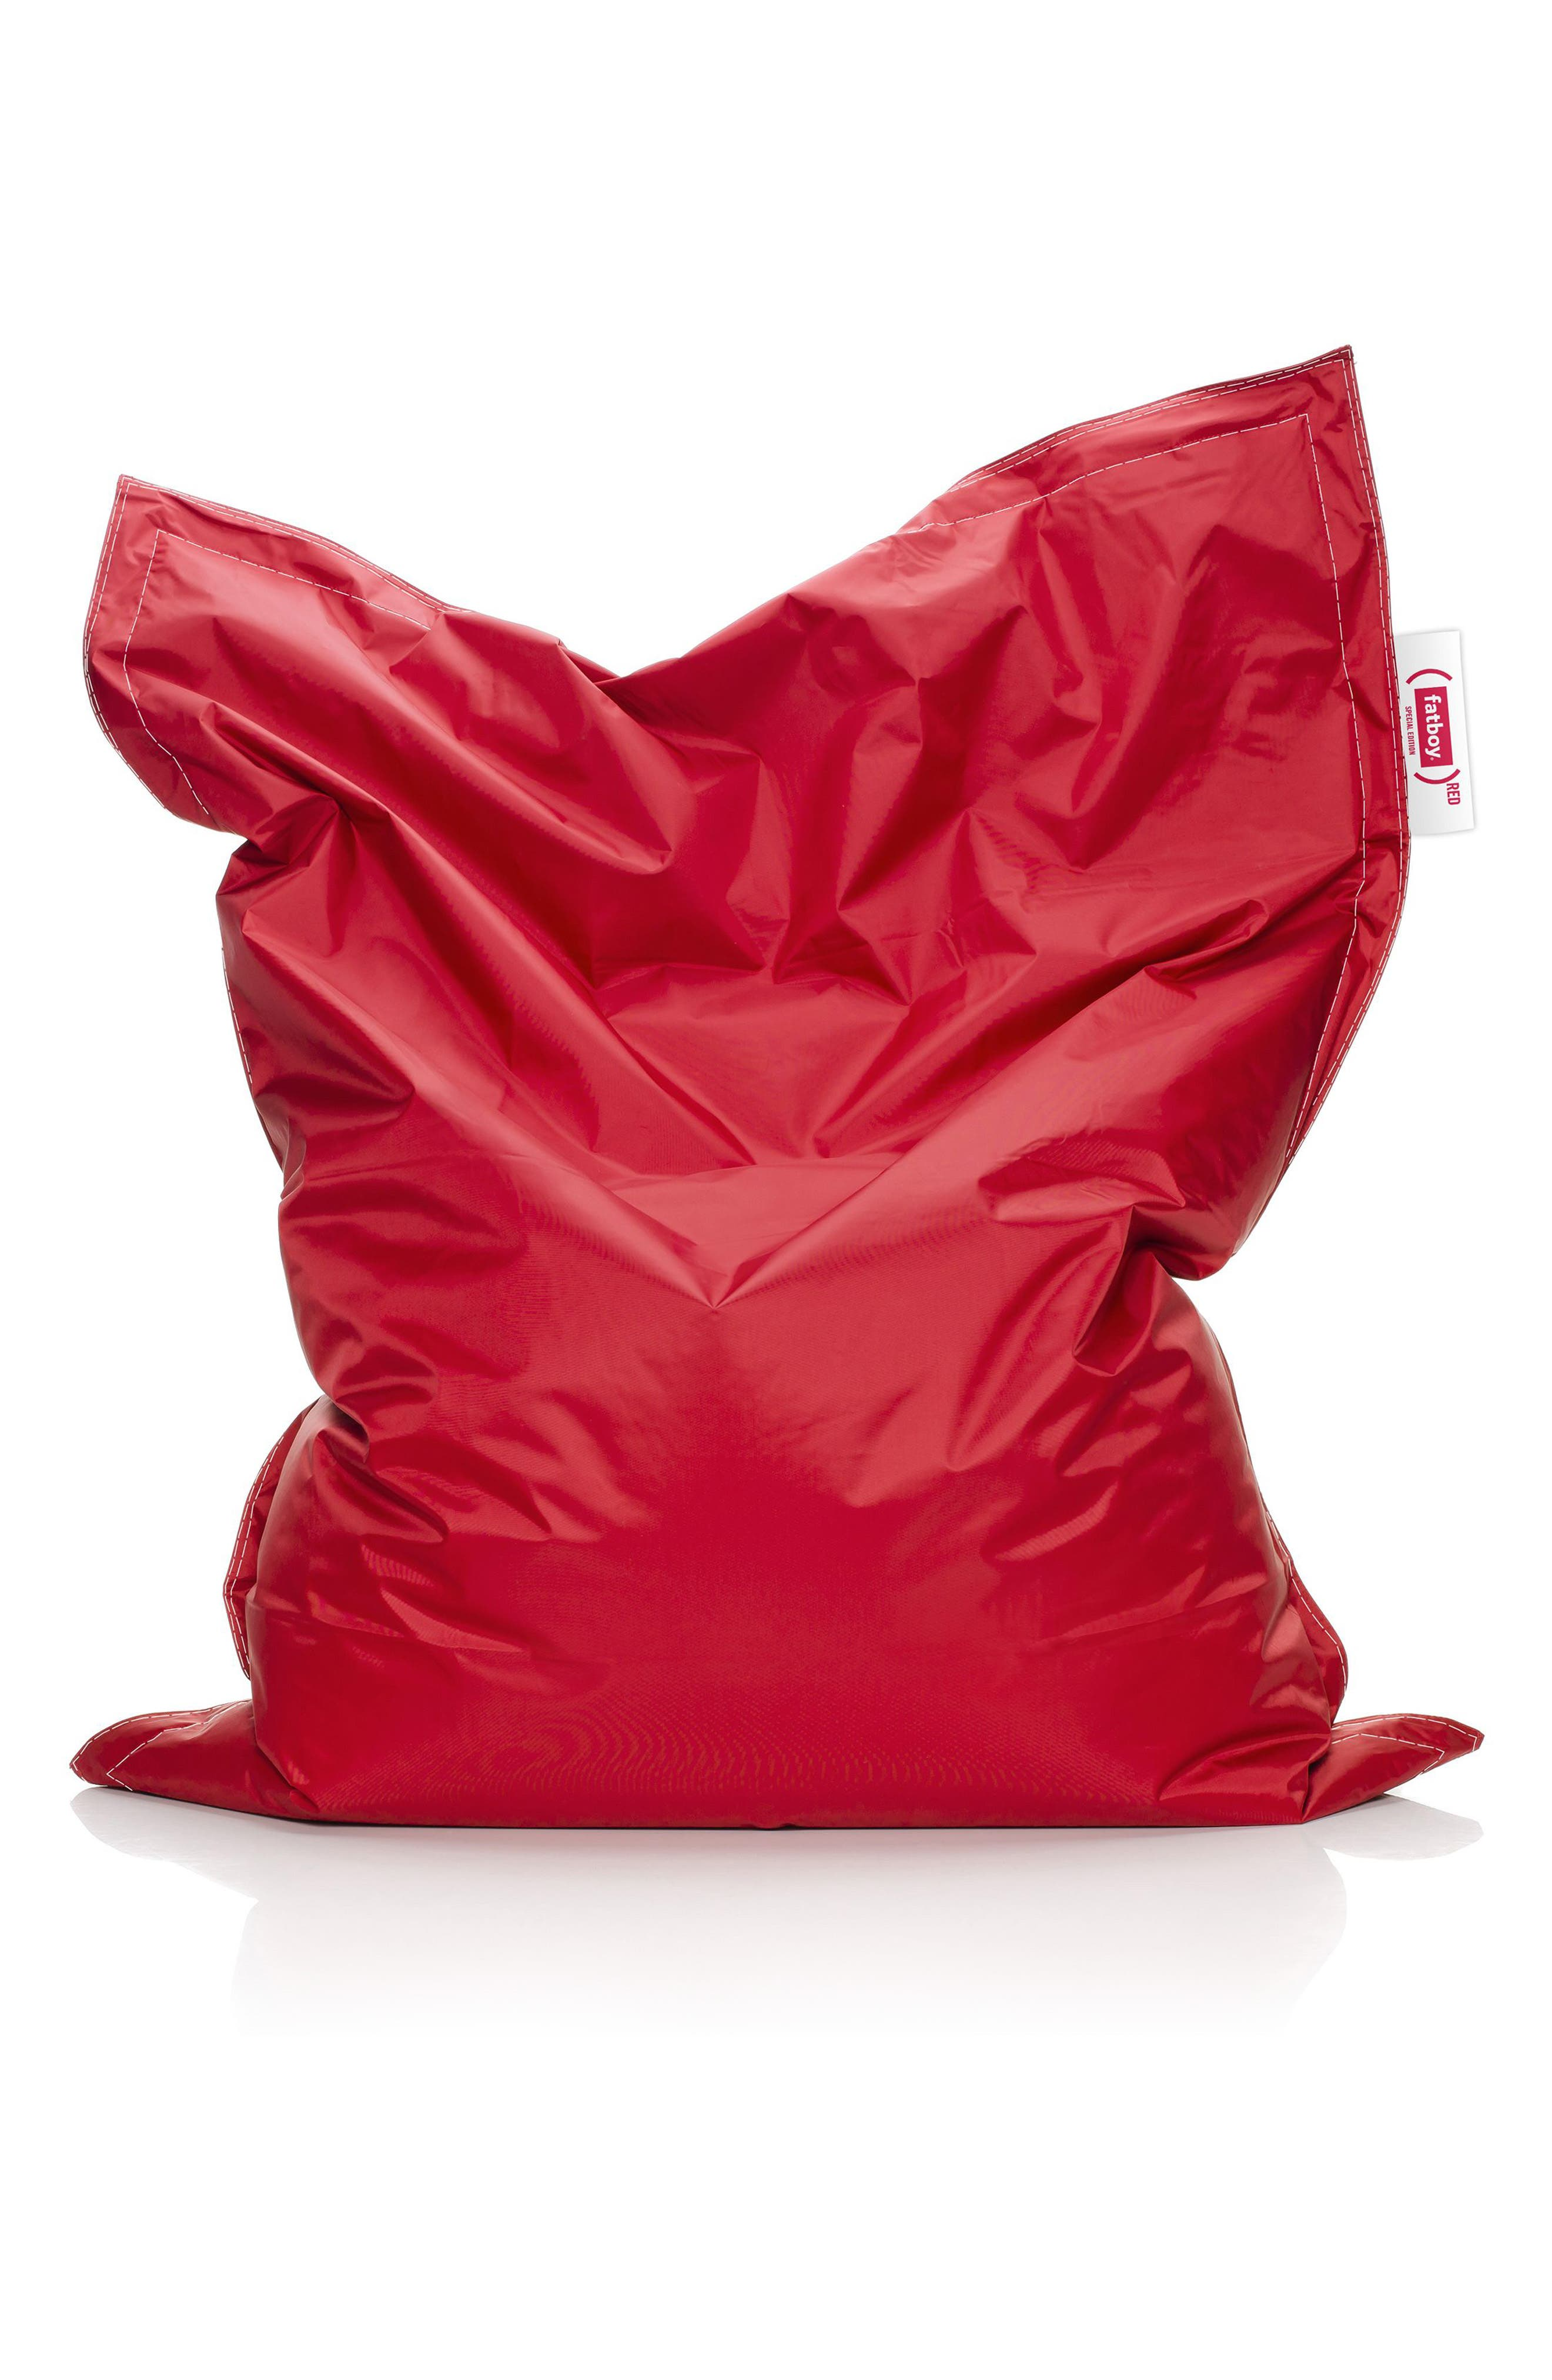 Alternate Image 1 Selected - Fatboy Original RED Special Edition Beanbag Chair